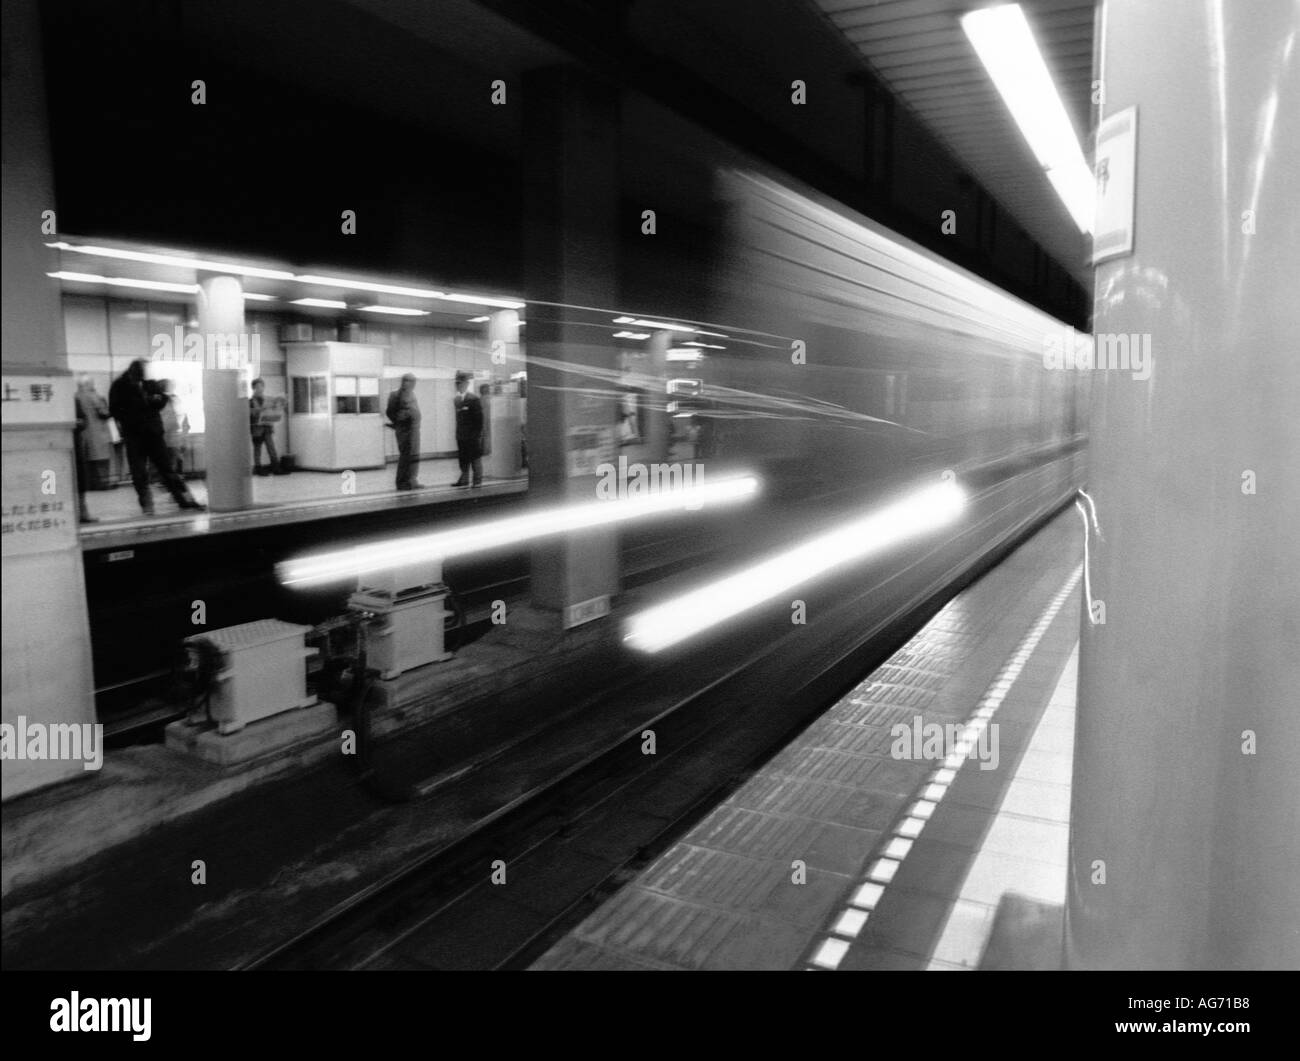 Japanese ghost train. High speed train rushing through station causing bluured ghost like image - Stock Image